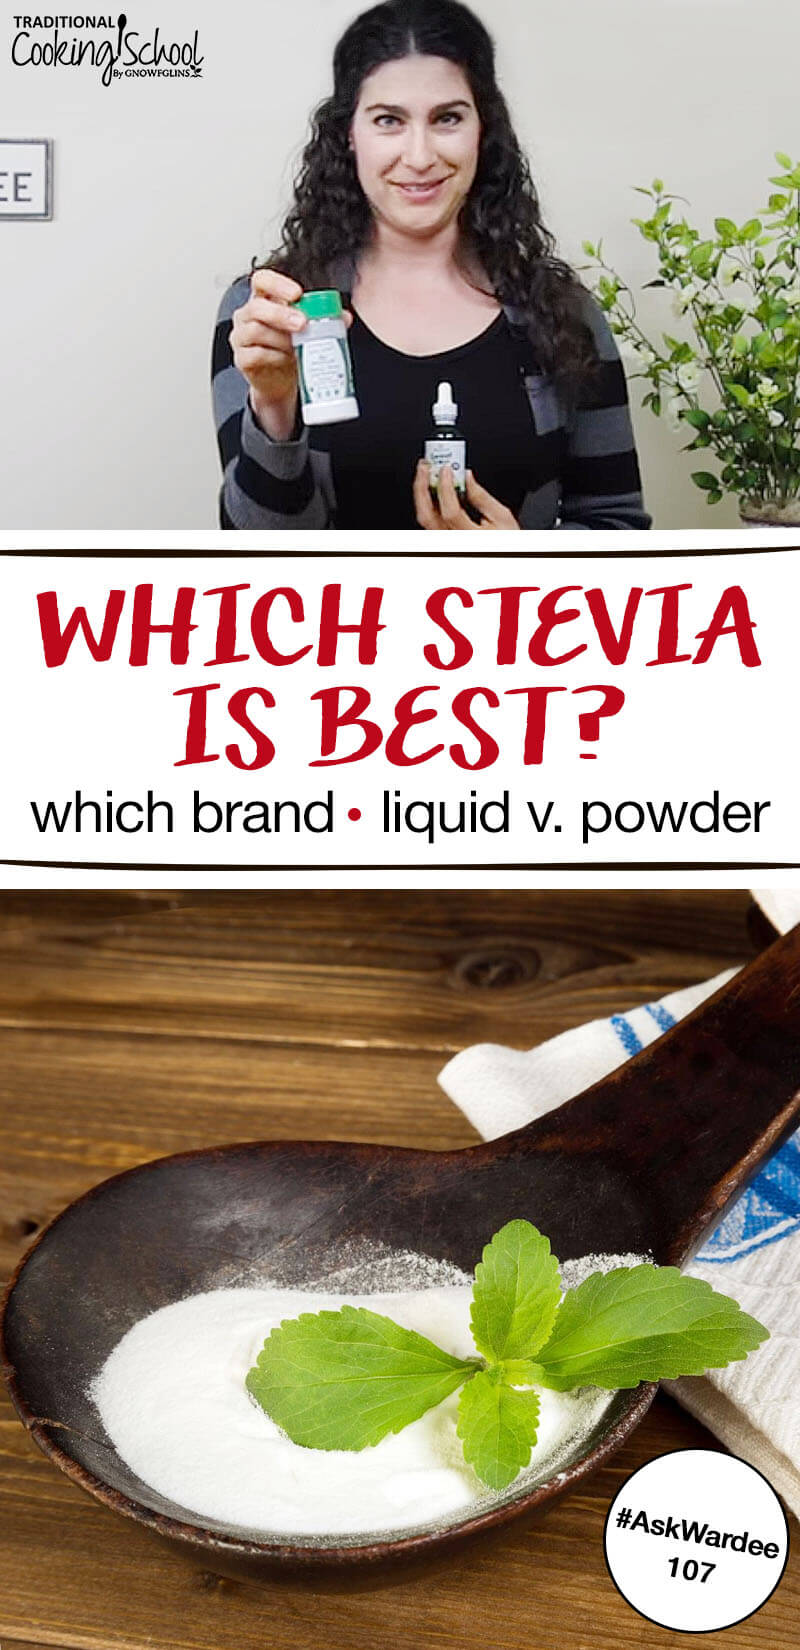 You want to cut back on sugar so you decide to switch to stevia, the sweet-tasting herb with no calories and no glycemic impact. But, which stevia is best? Should you use liquid or powder? And what brand? Watch, listen, or read to learn how to choose the least processed, best-tasting stevia!